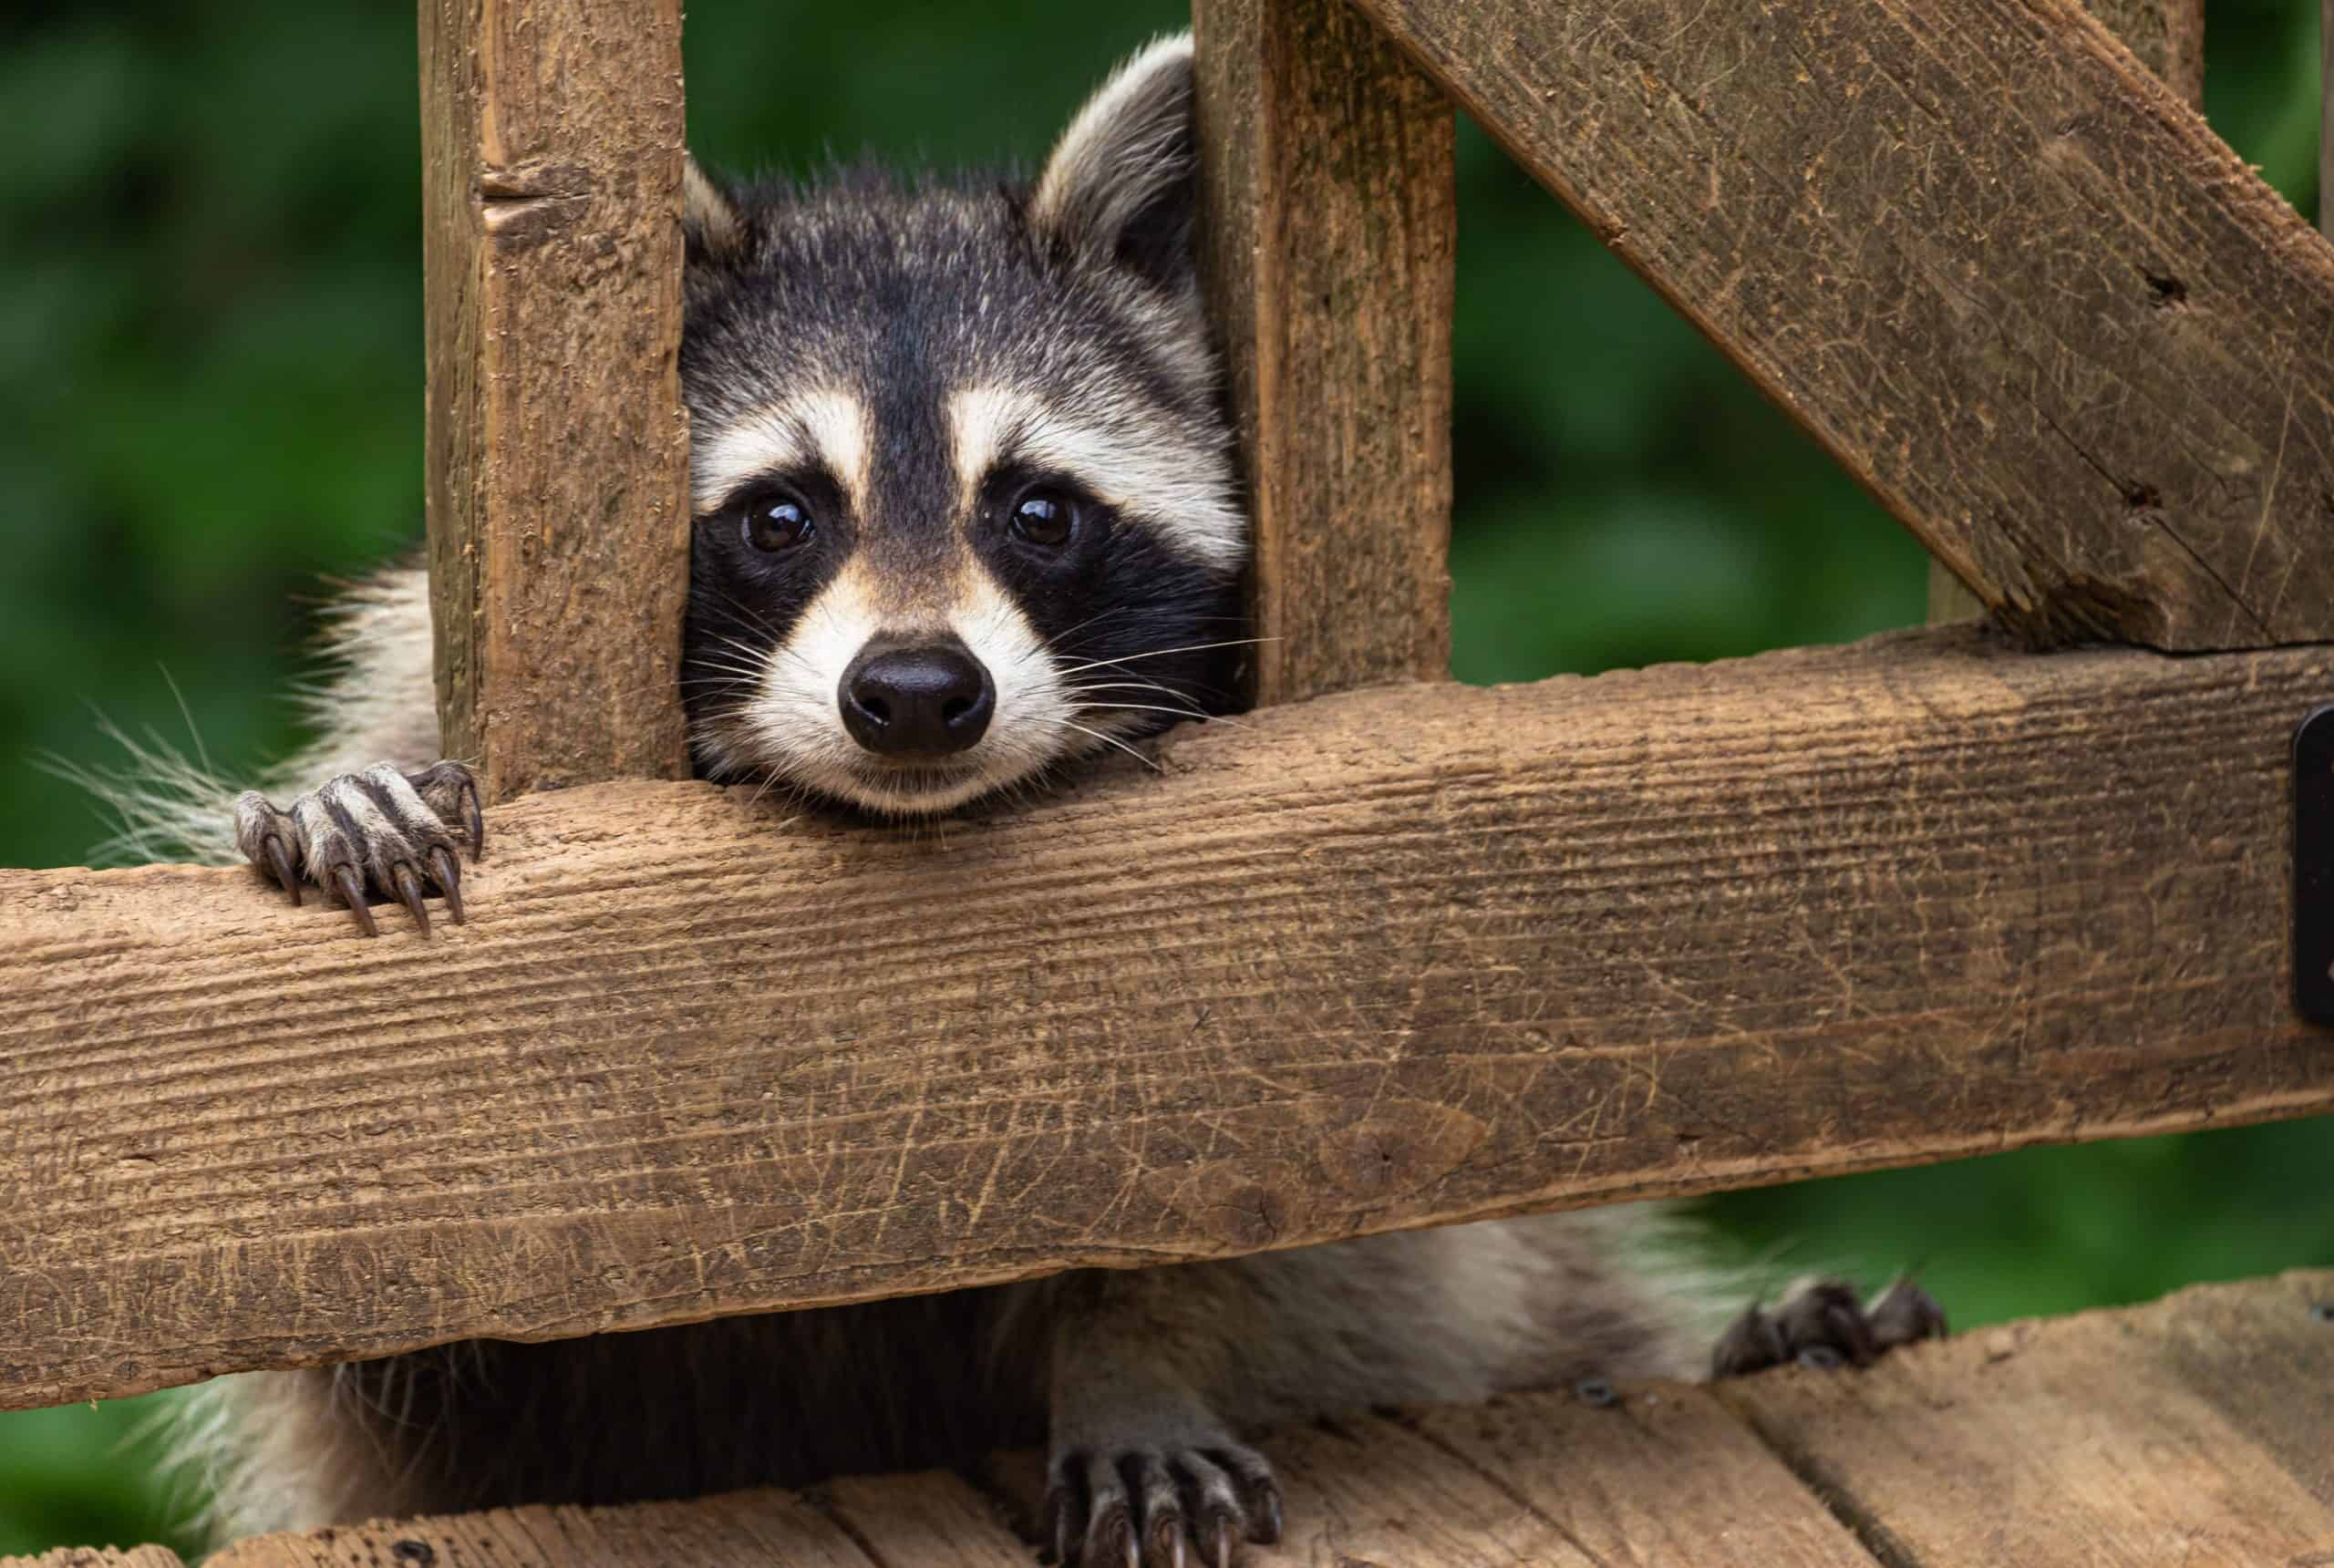 Raccoon peeks onto deck. Raccoons and other wildlife will eat pet food left outdoors. Protect your dog by feeding him indoors or by supervising outdoor meals.